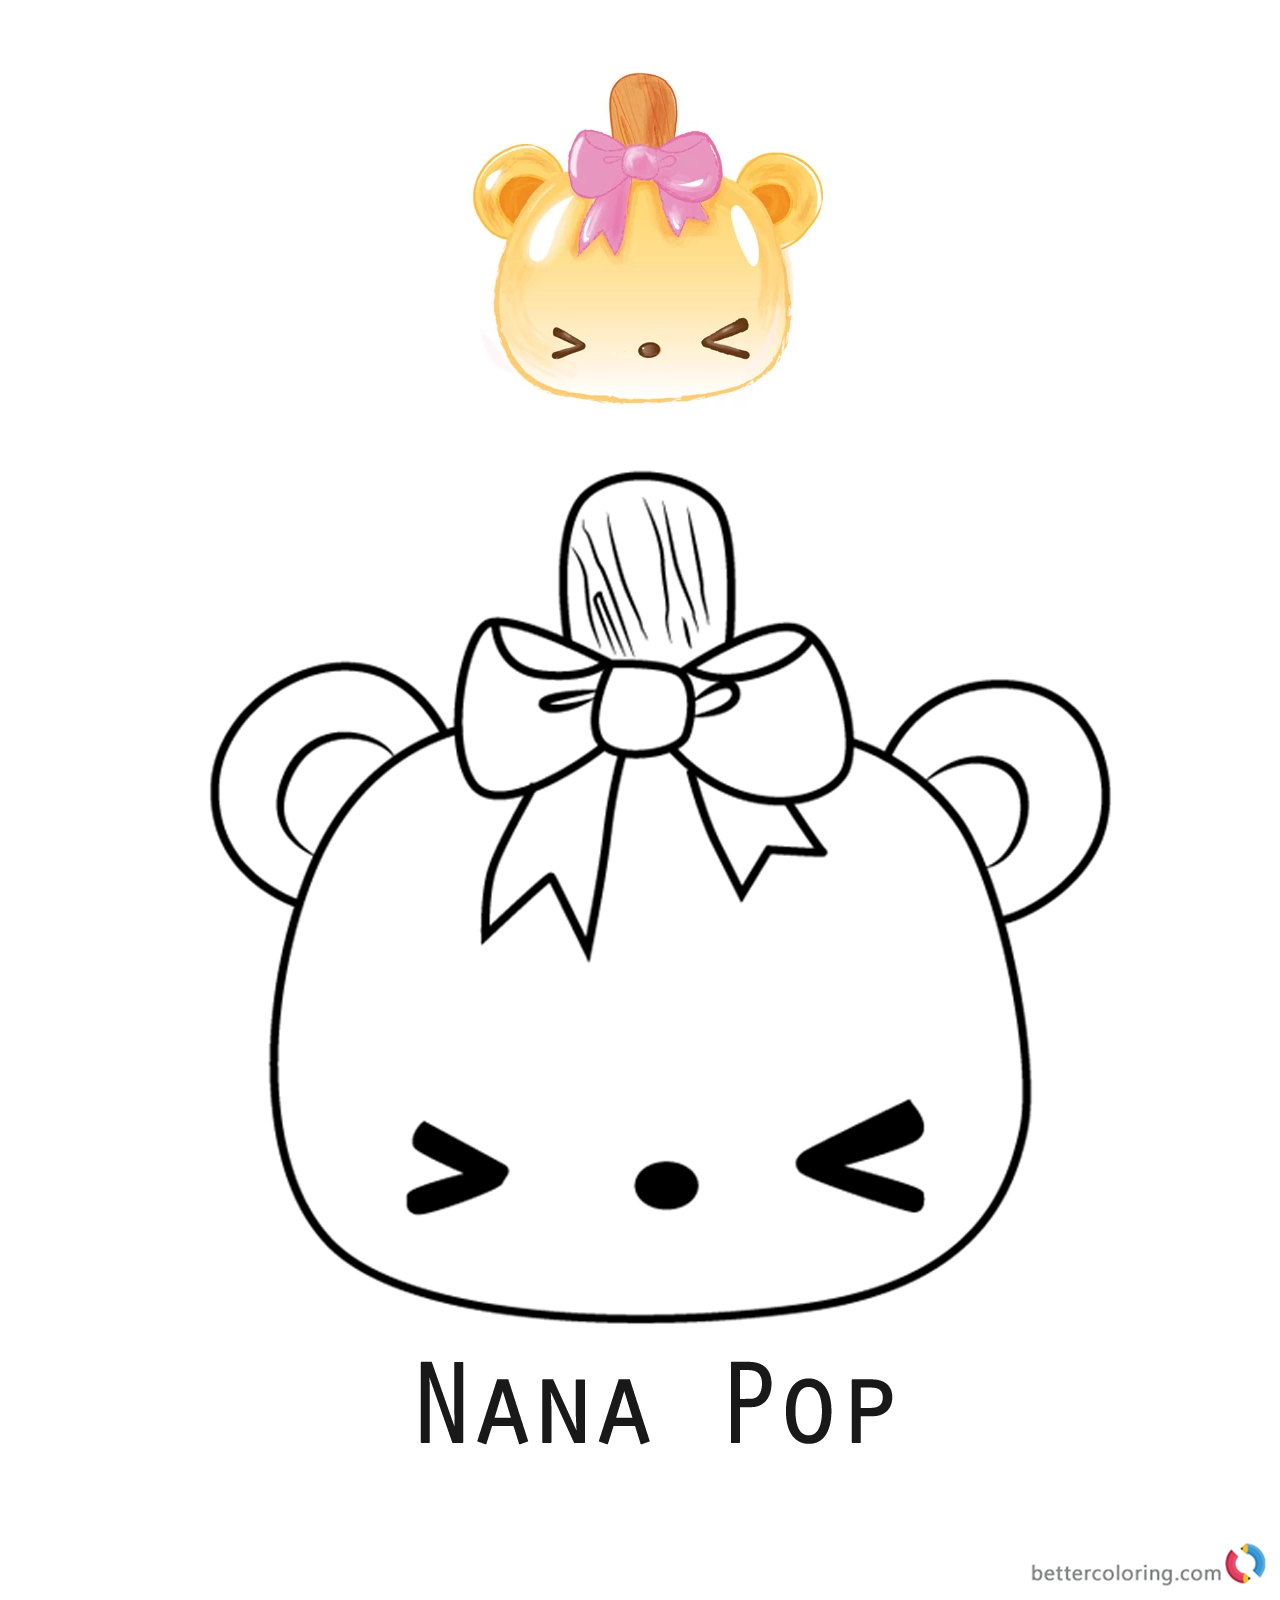 Nana Pop from Num Noms coloring pages printable